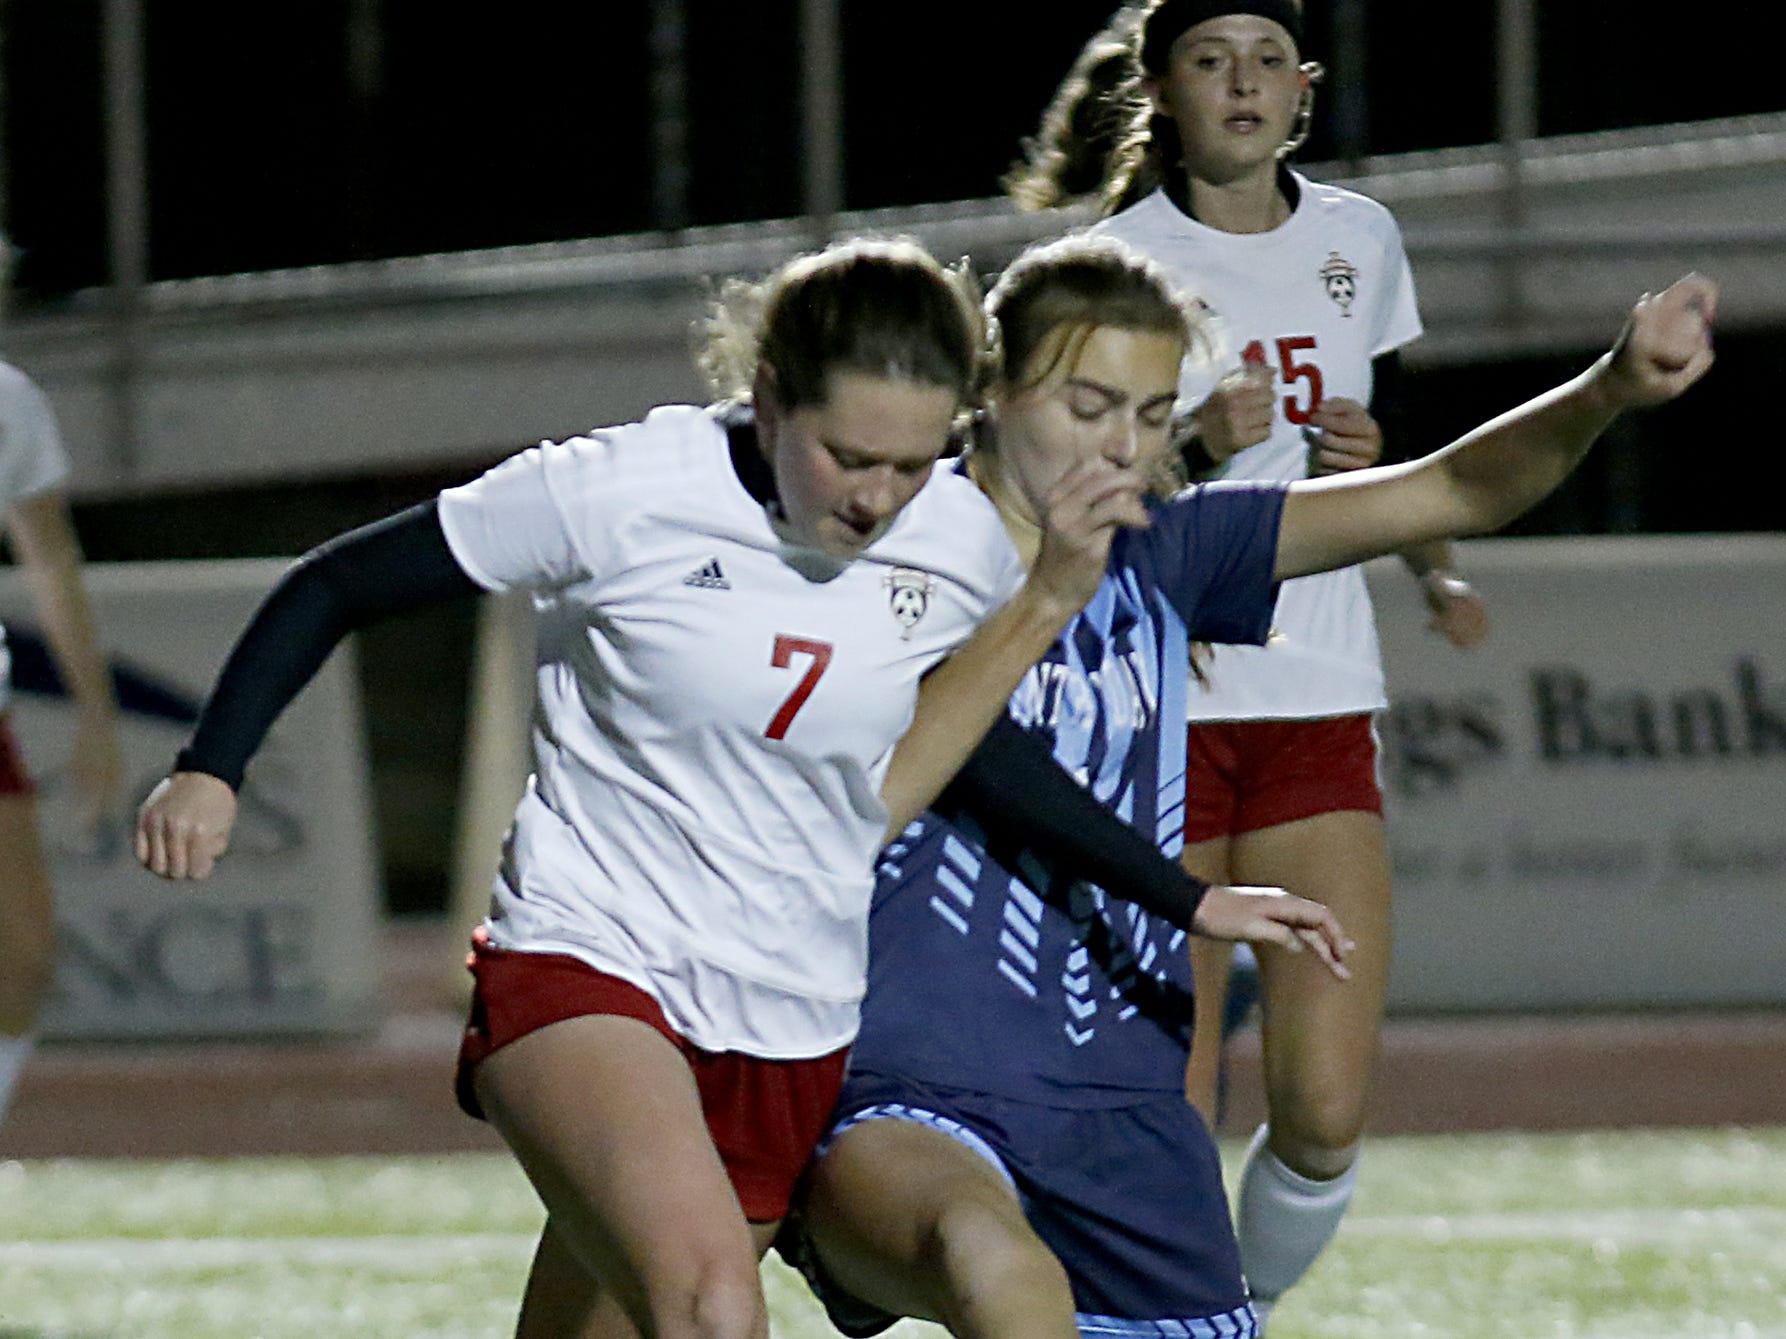 Cincinnati Country Day forward Lawson Renie and Bishop Rosecrans defender Allie Berry battle for possession during their girls division III state semifinal at London Tuesday, Nov. 6, 2018.